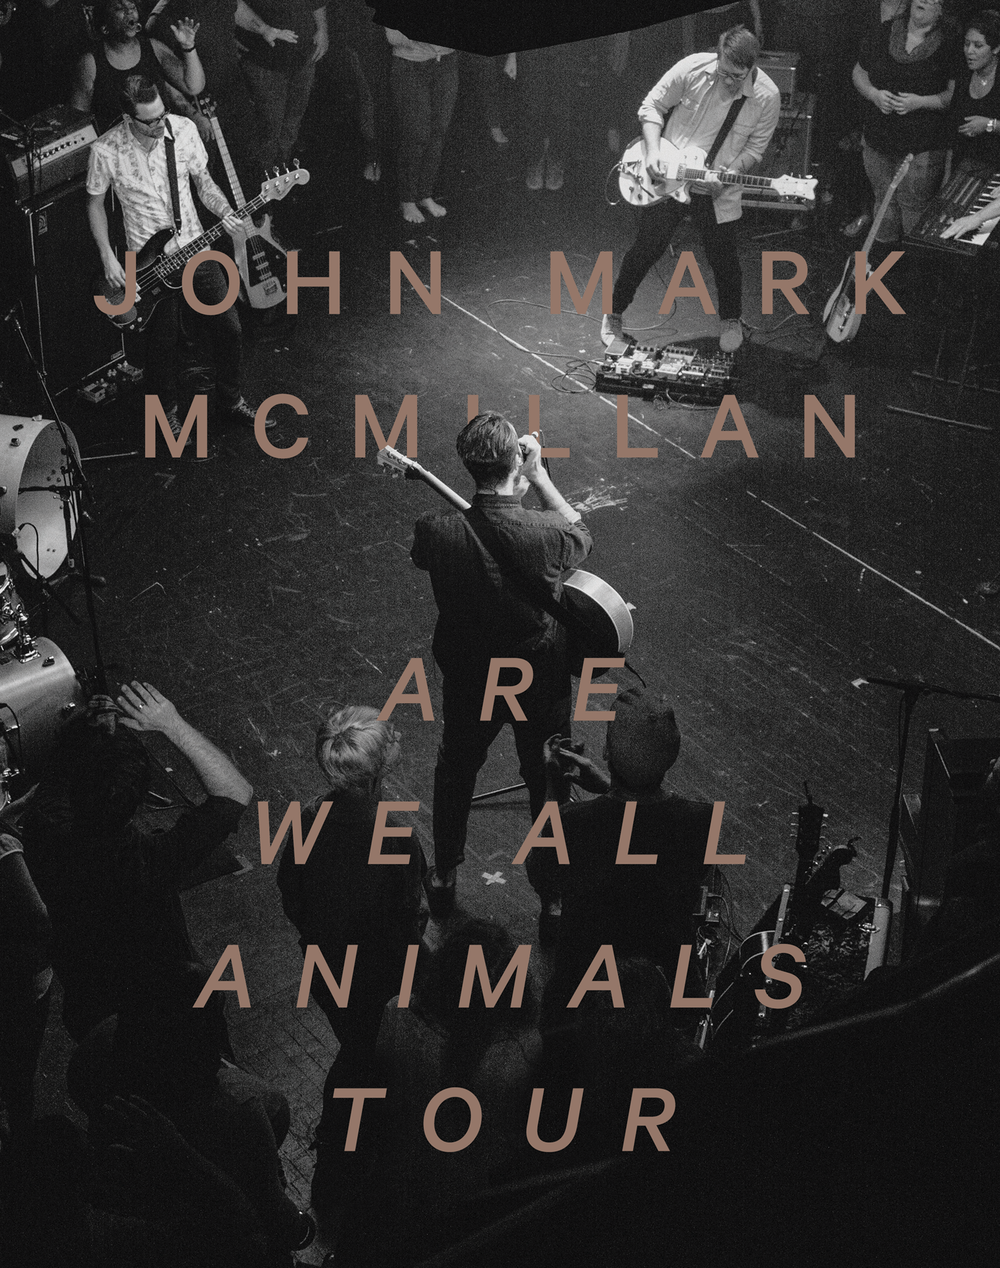 JMM_AreWeAllAnimals_TourPhoto.png